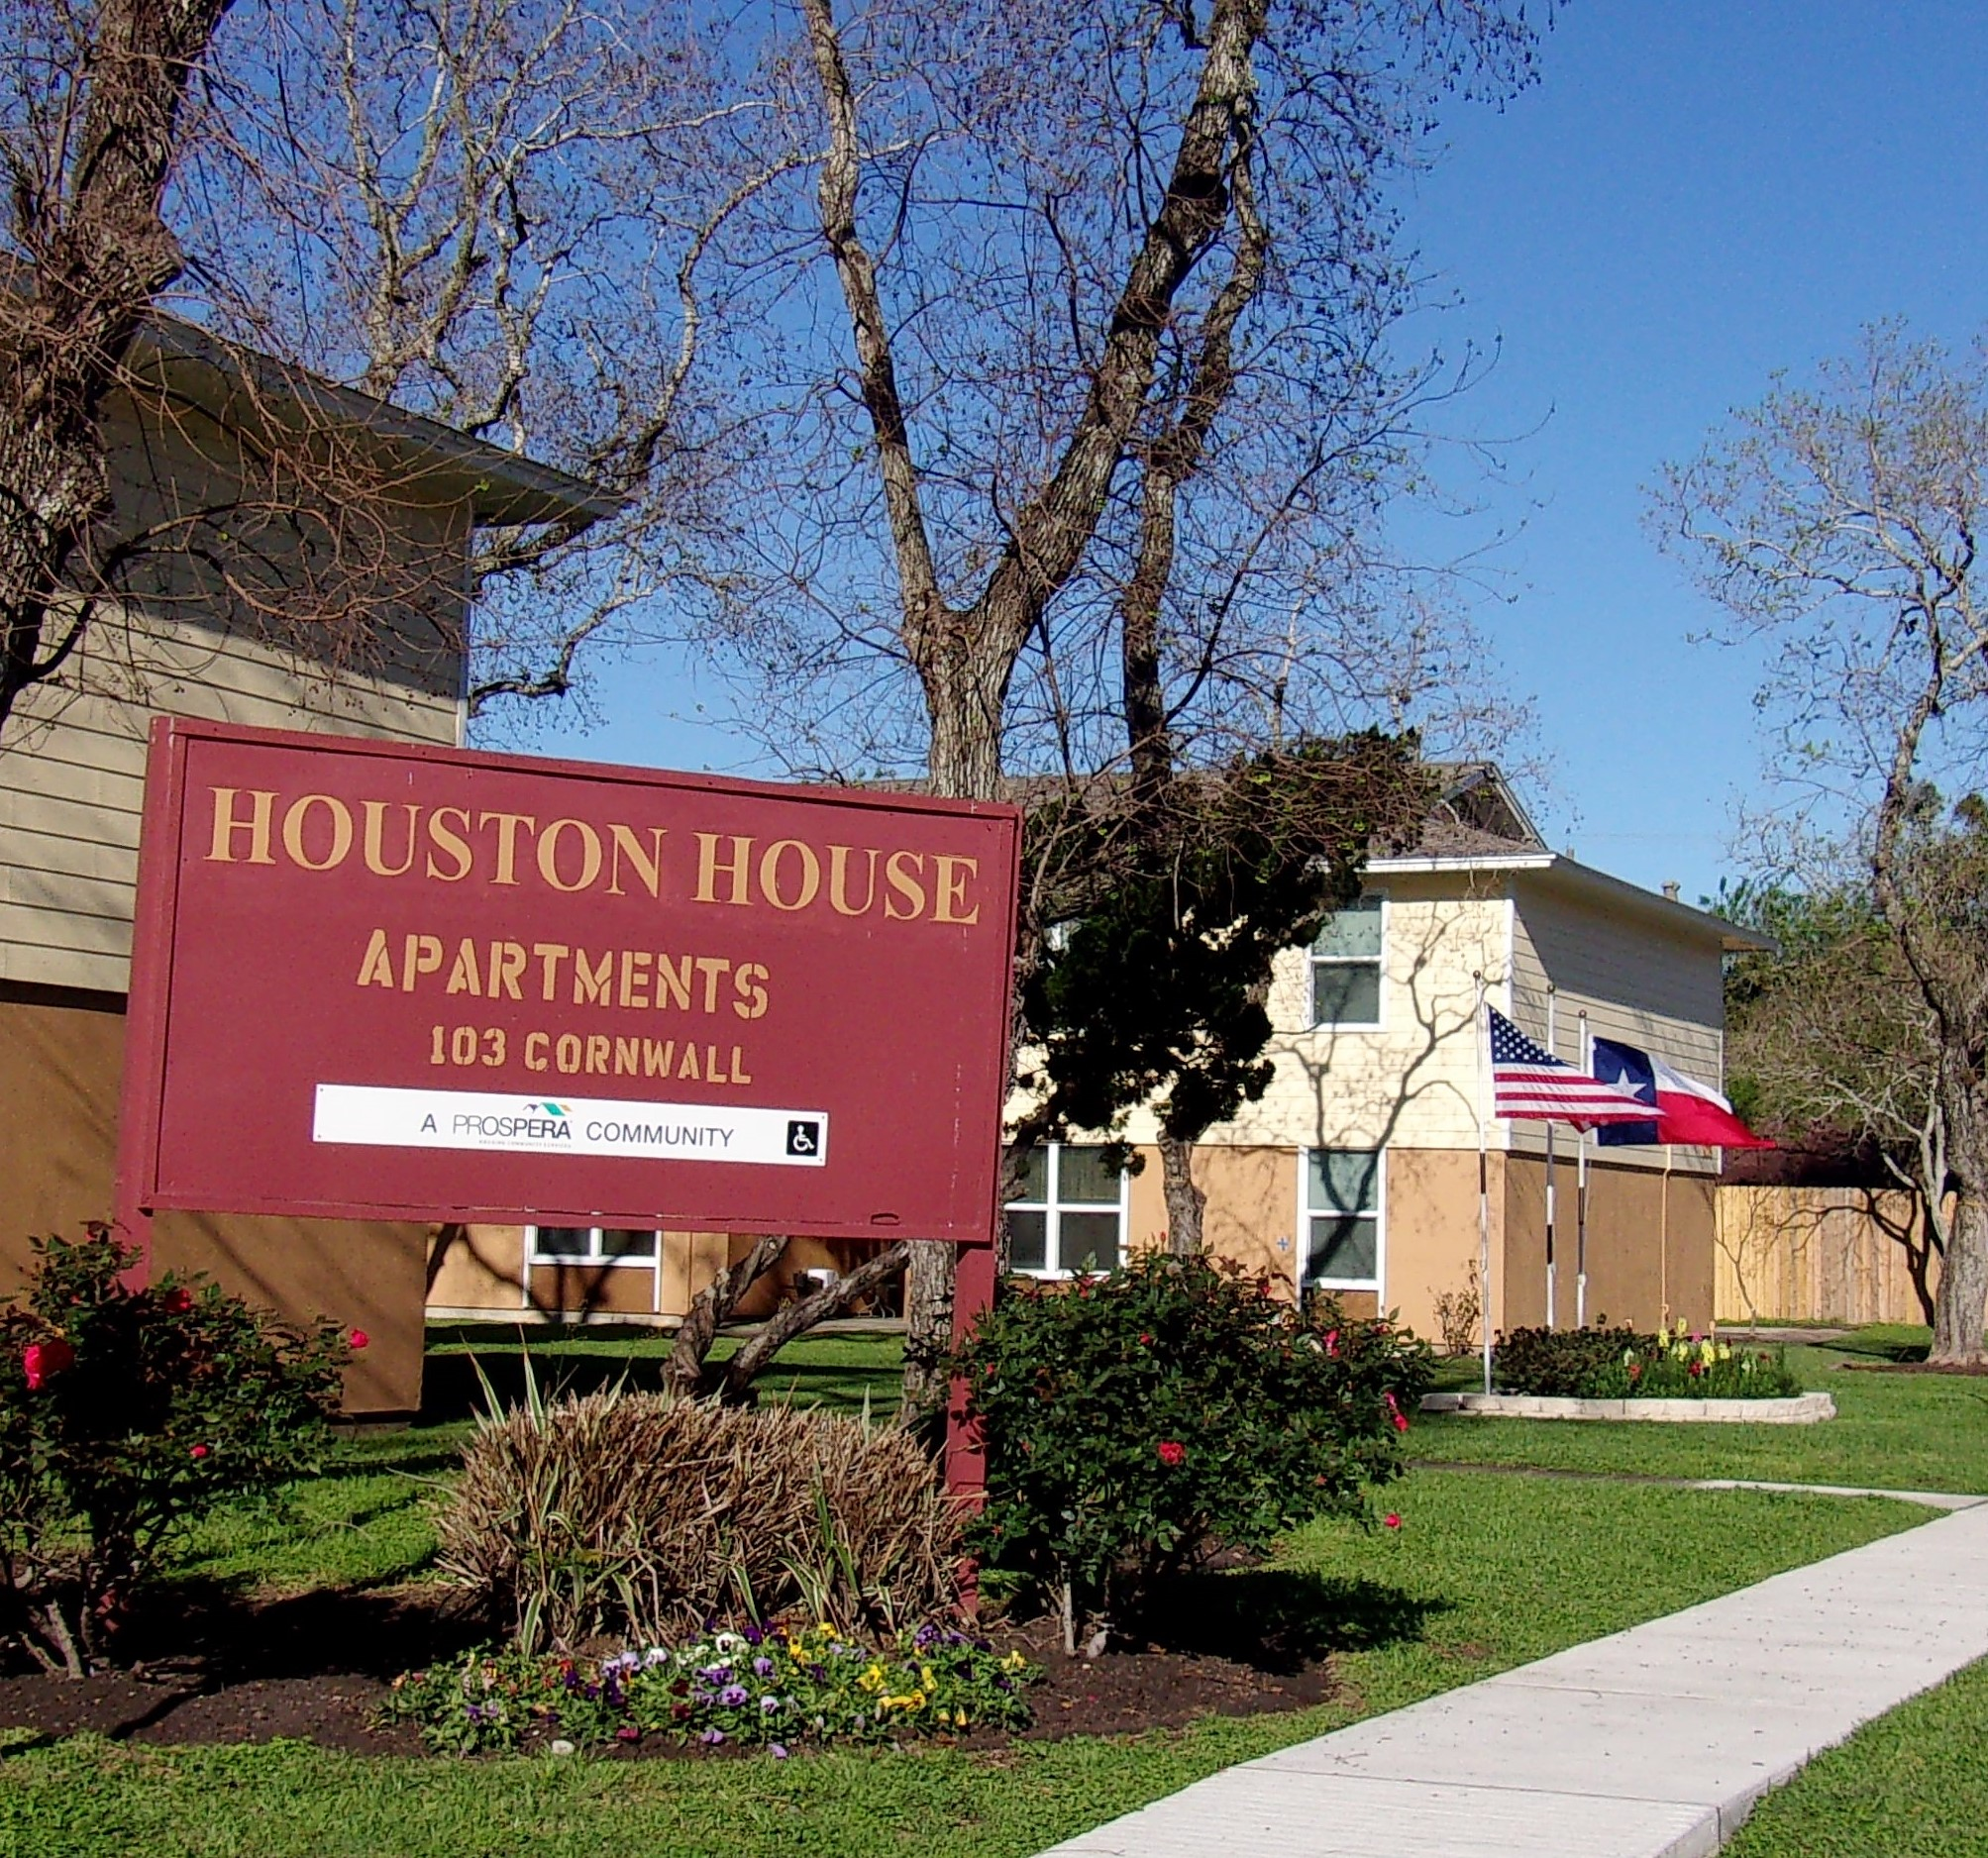 Image of Houston House Apts. in Victoria, Texas